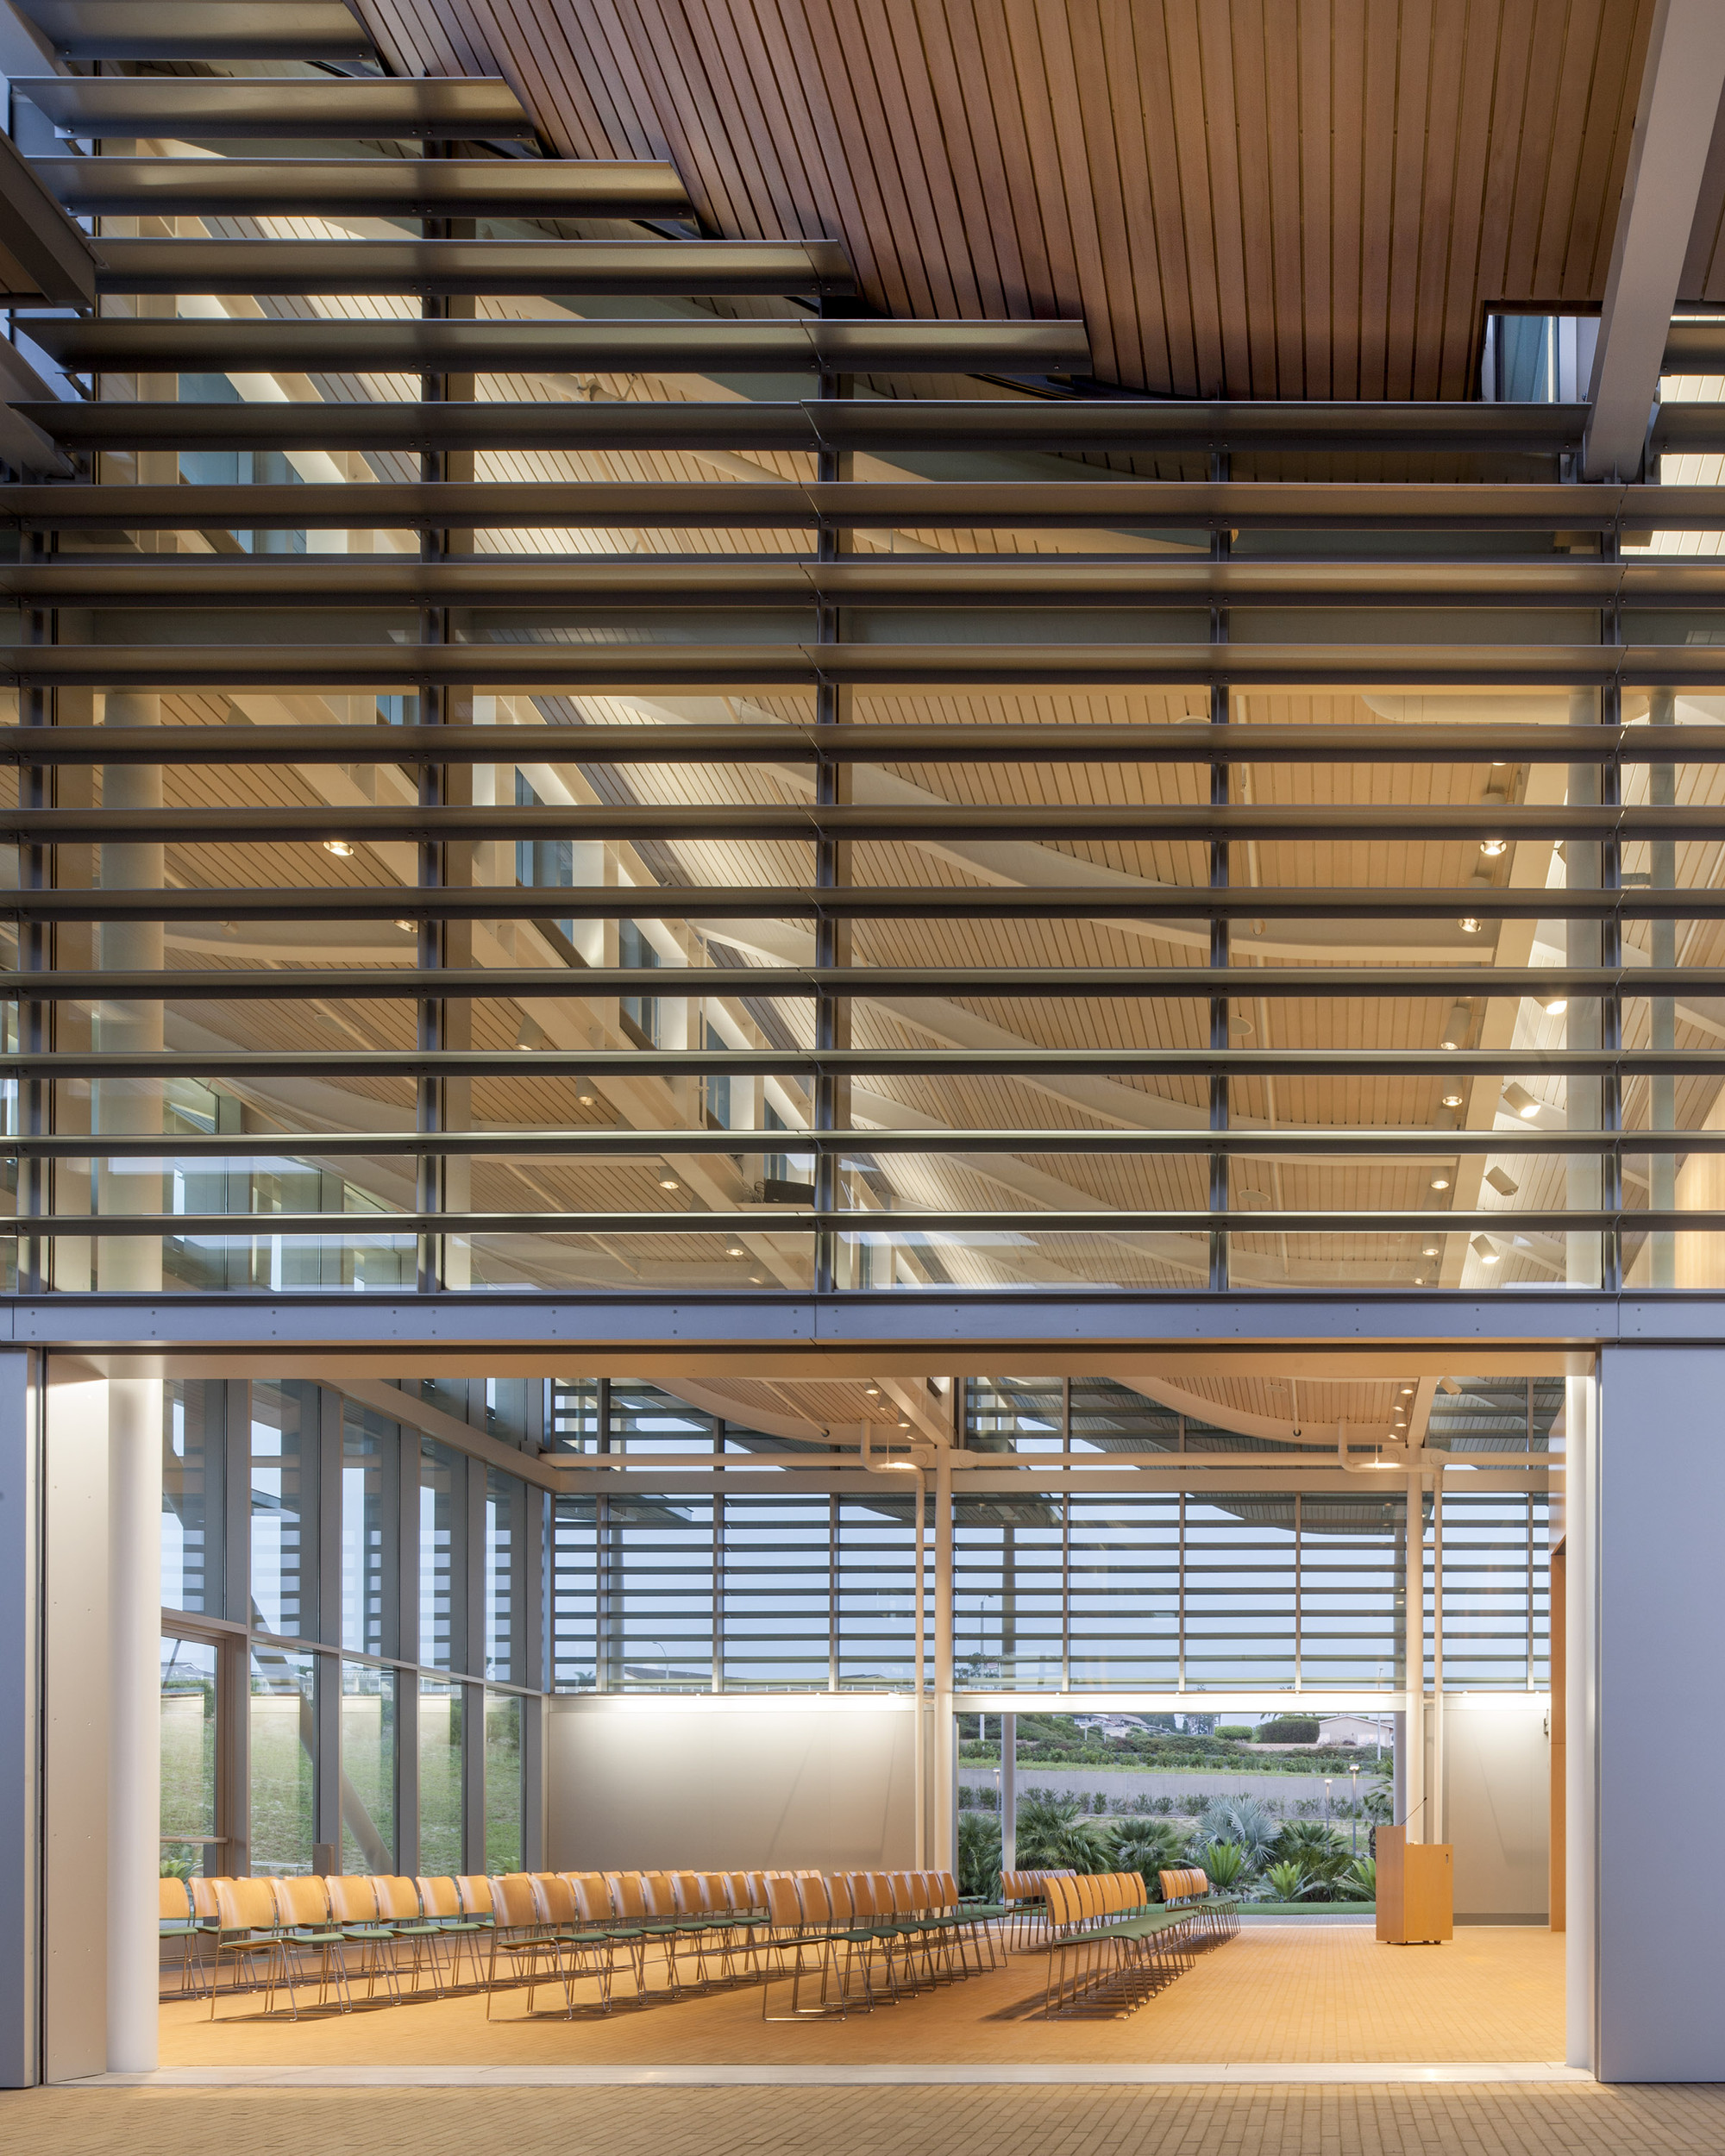 2015 AIA Institute Honor Awards For Interior ArchitectureNewport Beach Civic Center Bohlin Cywinski